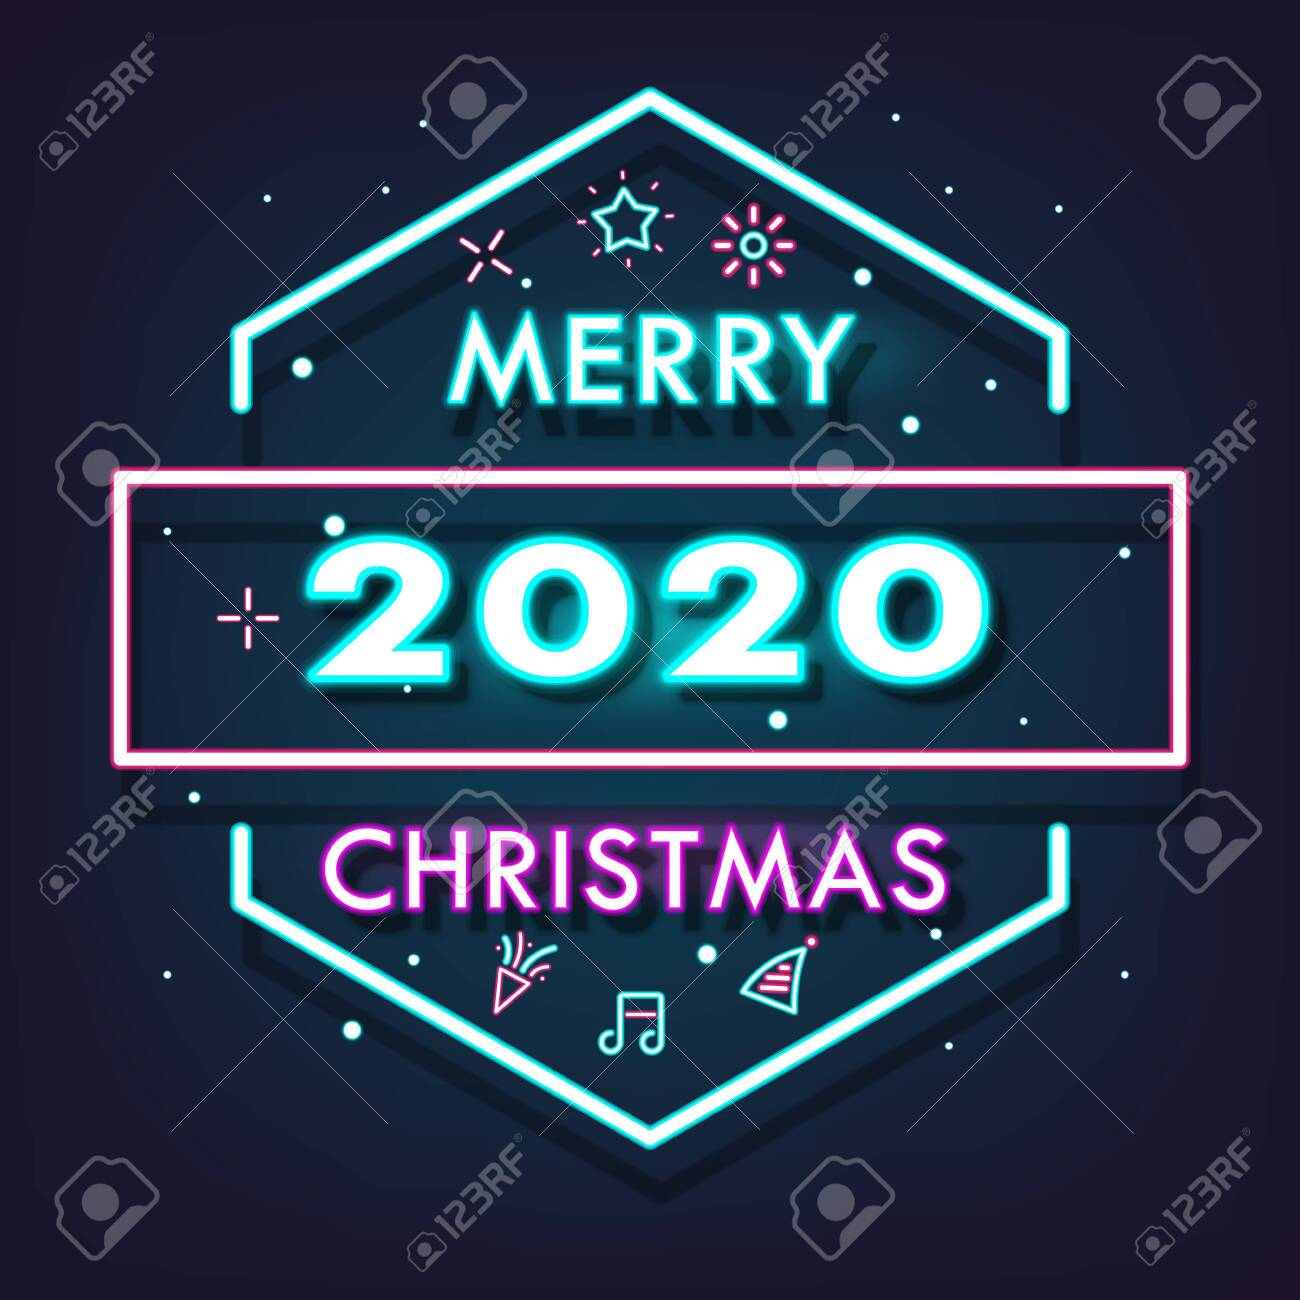 134468452 happy new year 2020 shining neon light background vector illustration merry christmas and happy new